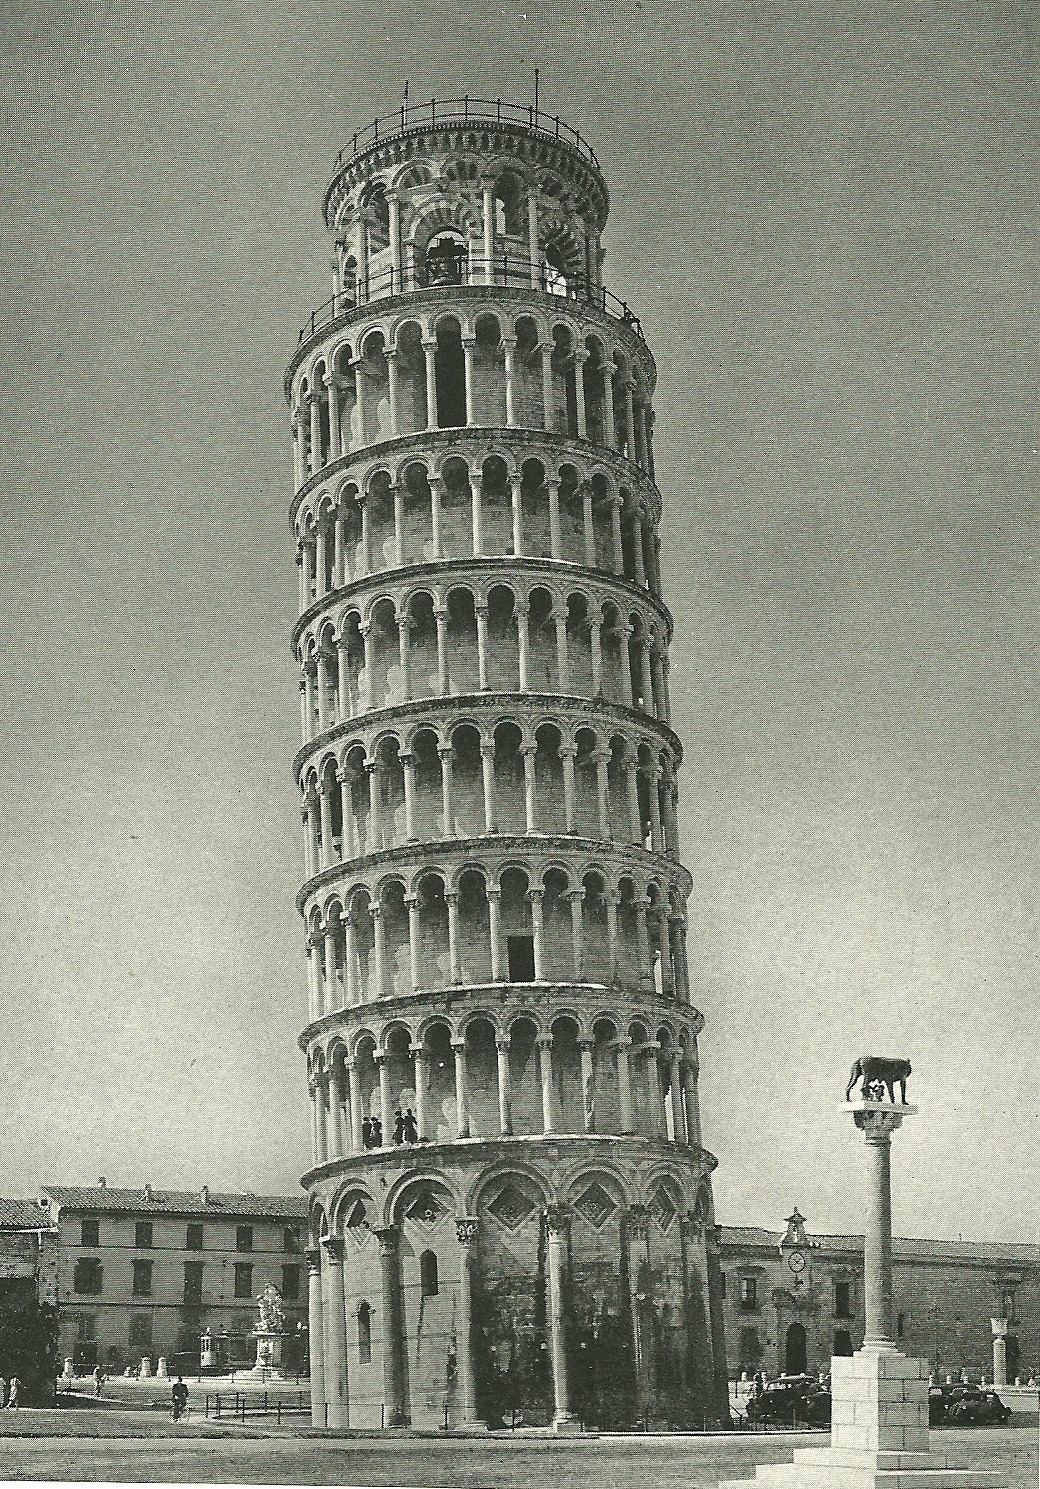 Tower of Pisa, Italy National Geographic | March 1940